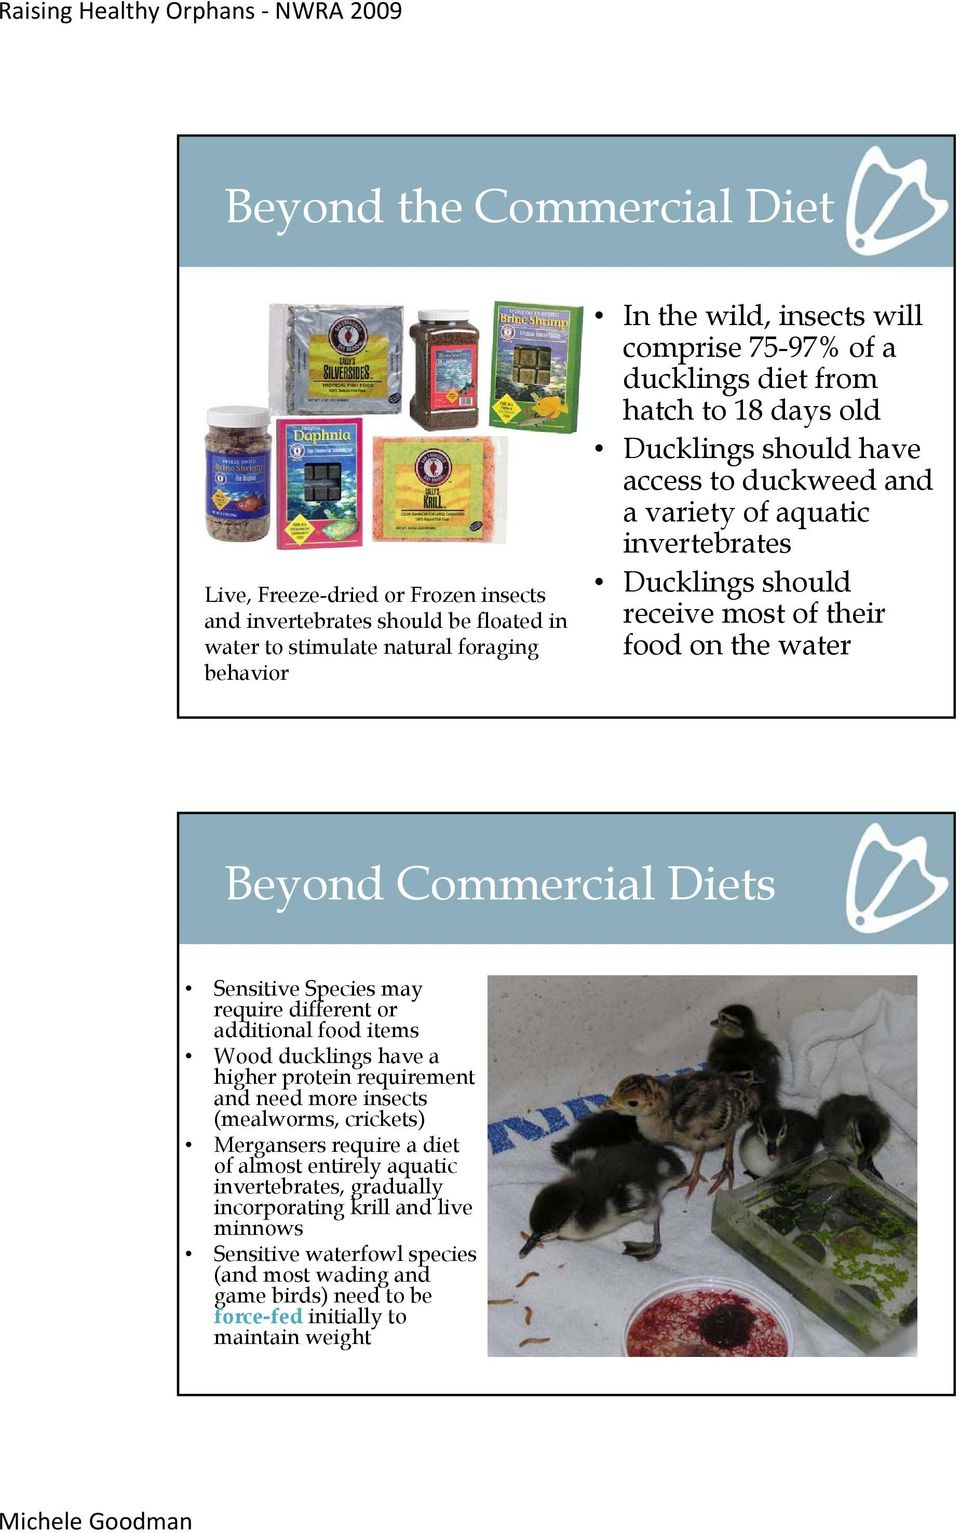 Commercial Diets Sensitive Species may require different or additional food items Wood ducklings have a higher protein requirement and need more insects (mealworms, crickets) Mergansers require